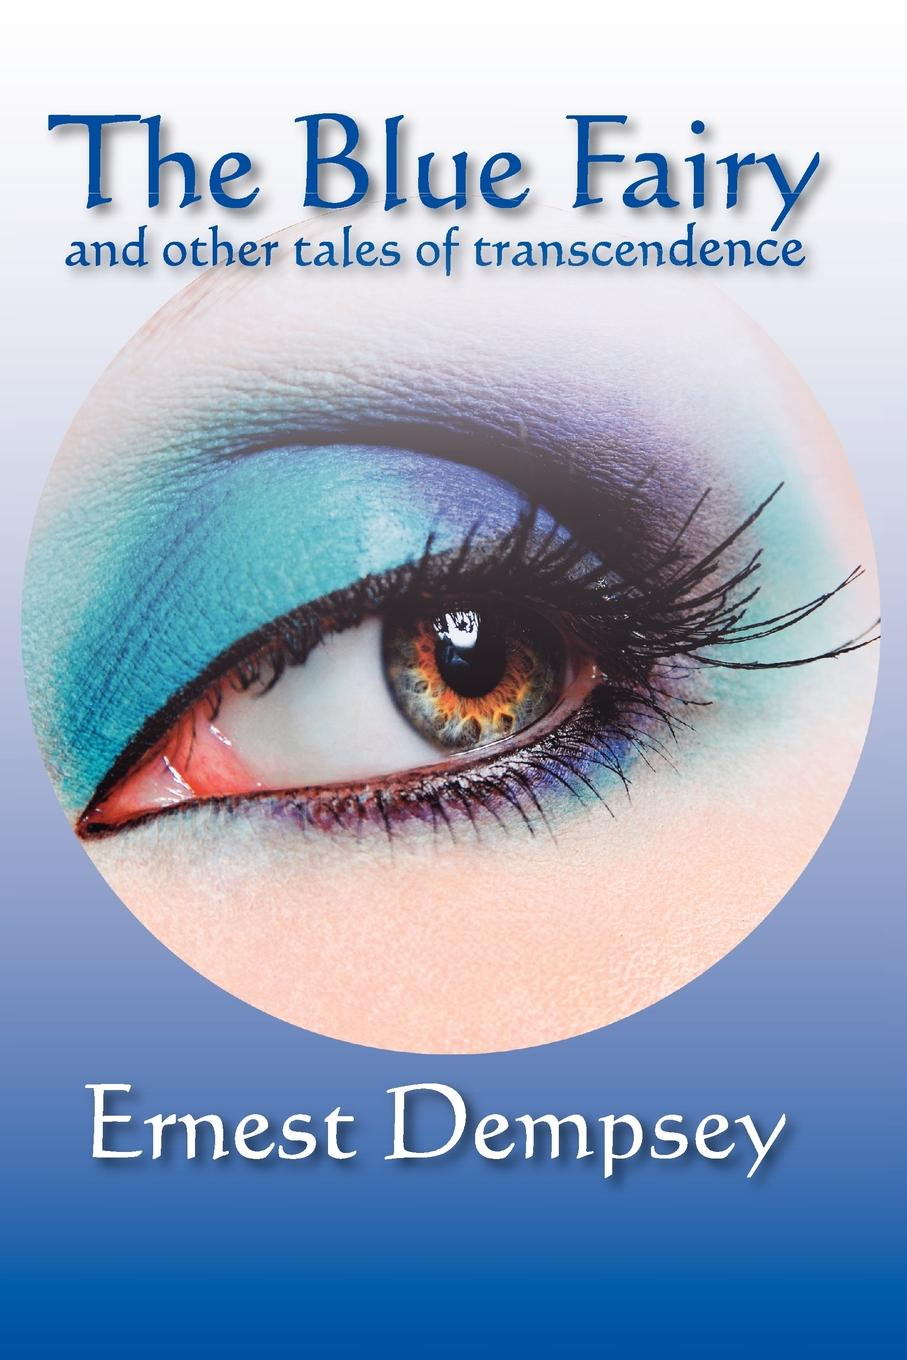 Ernest Dempsey The Blue Fairy and Other Tales of Transcendence